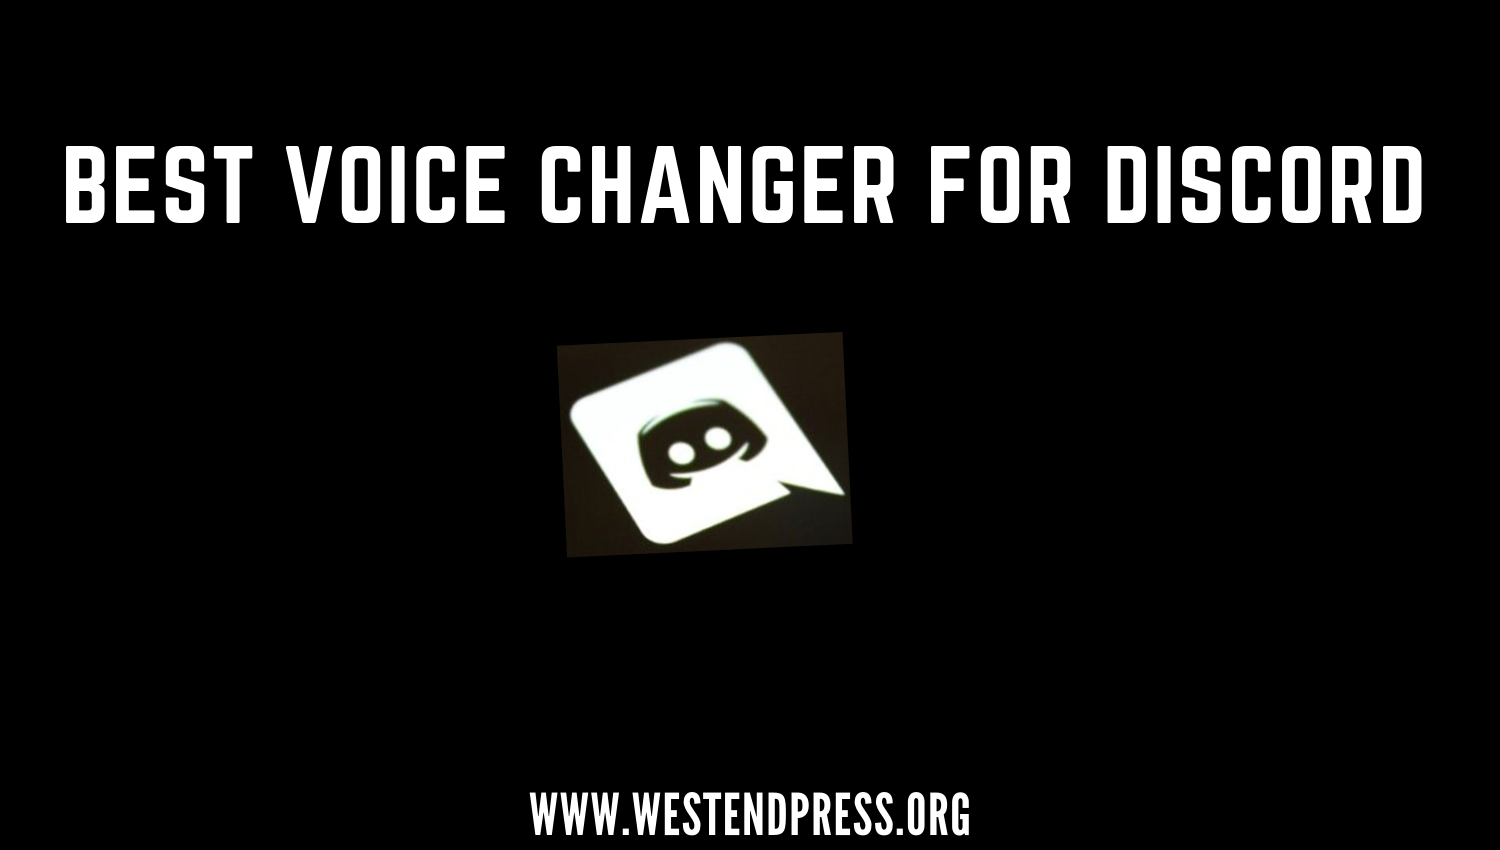 Best voice changer for Discord